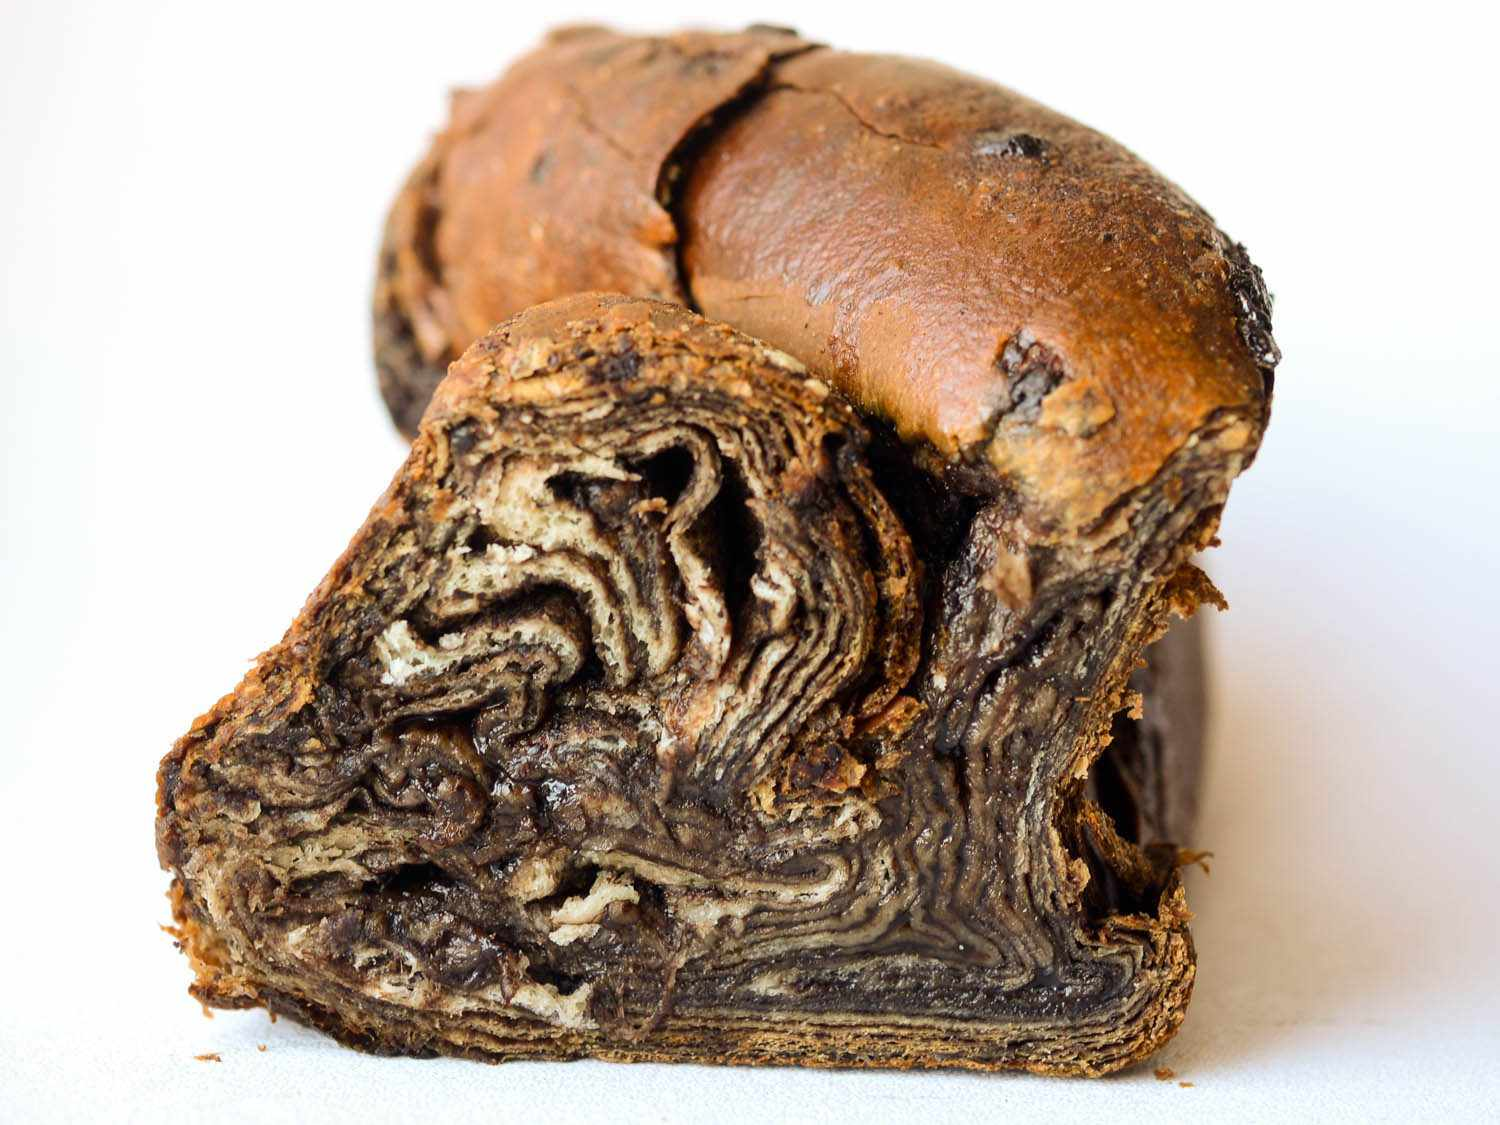 Photo of the cross section of a chocolate babka.